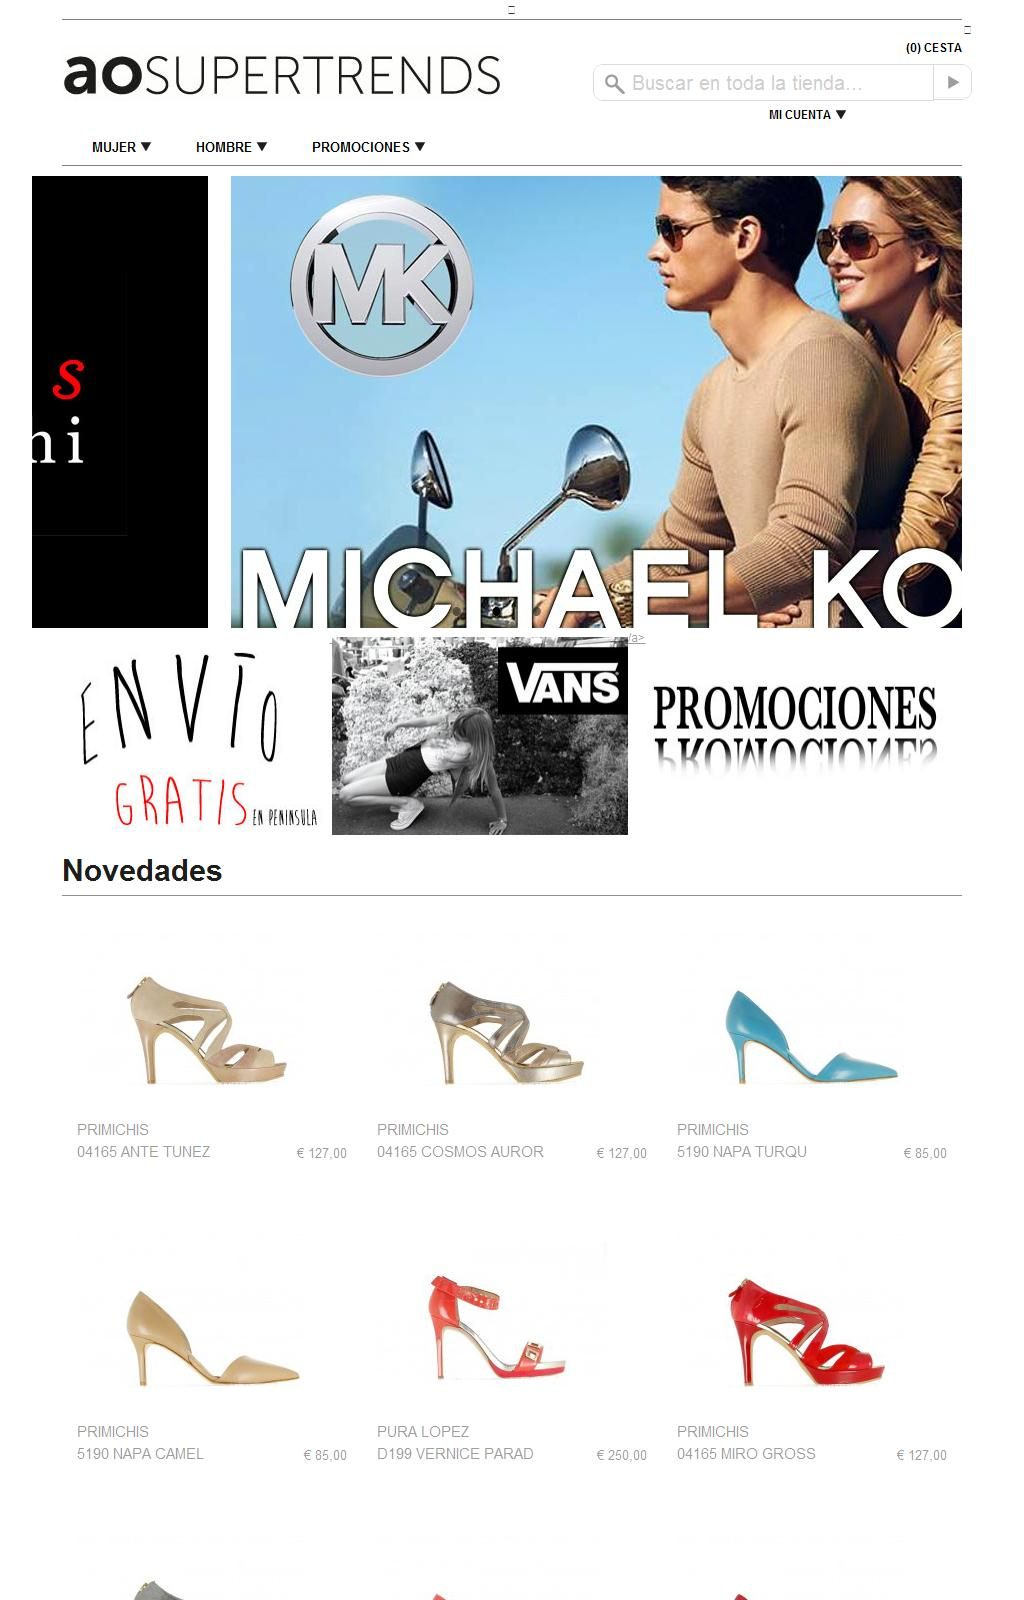 Sites Nosis OrtizTrade Zapateria Antonio Web srtdhQ